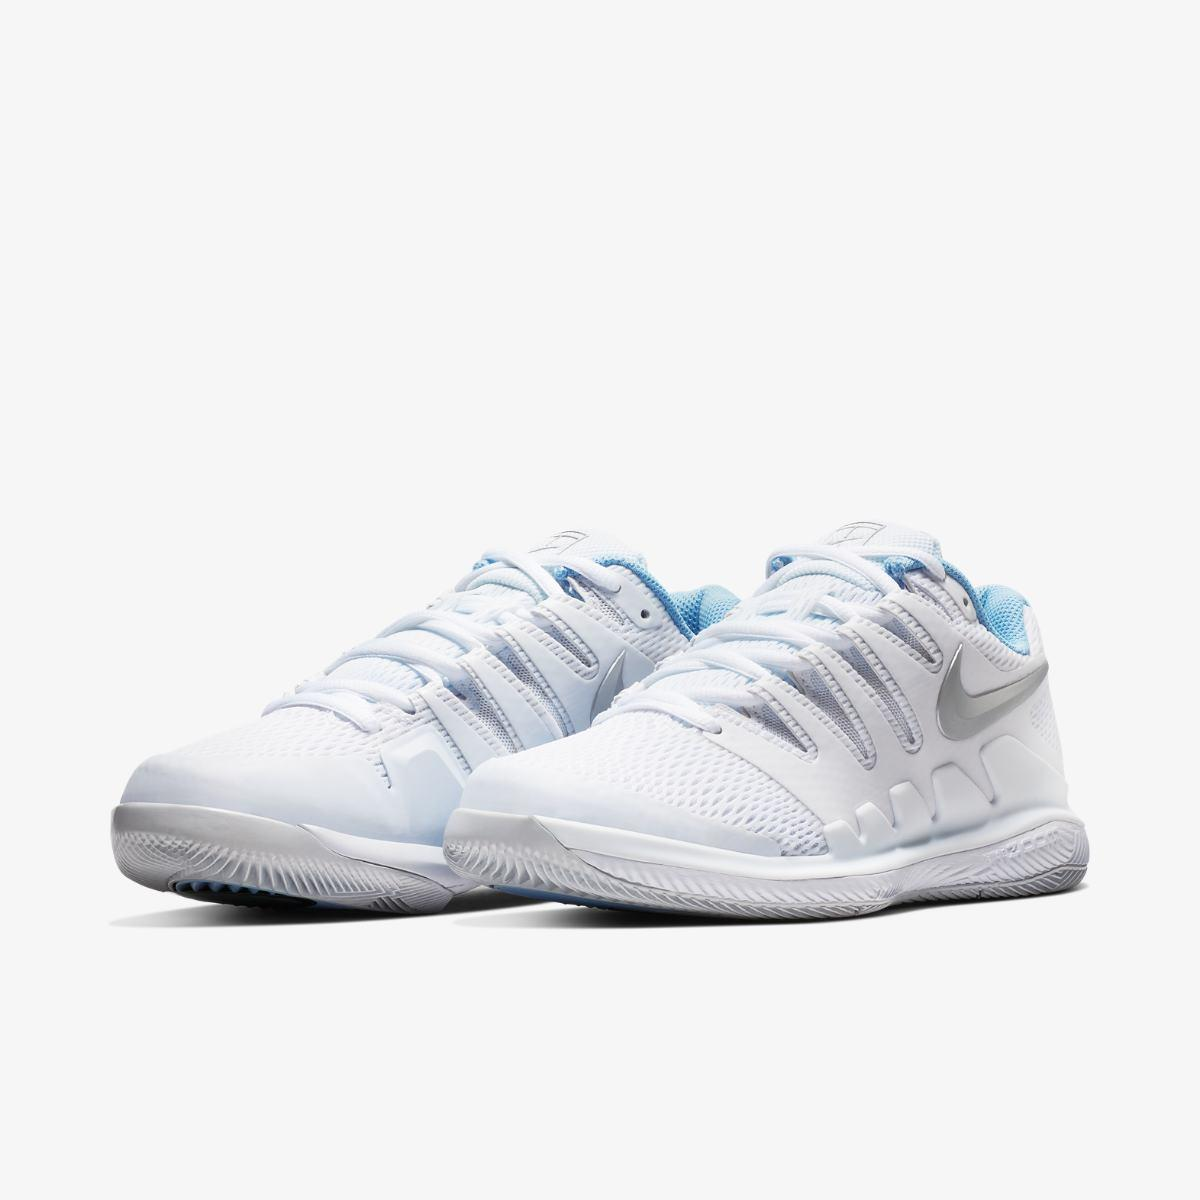 Кроссовки Nike Air Zoom Vapor X